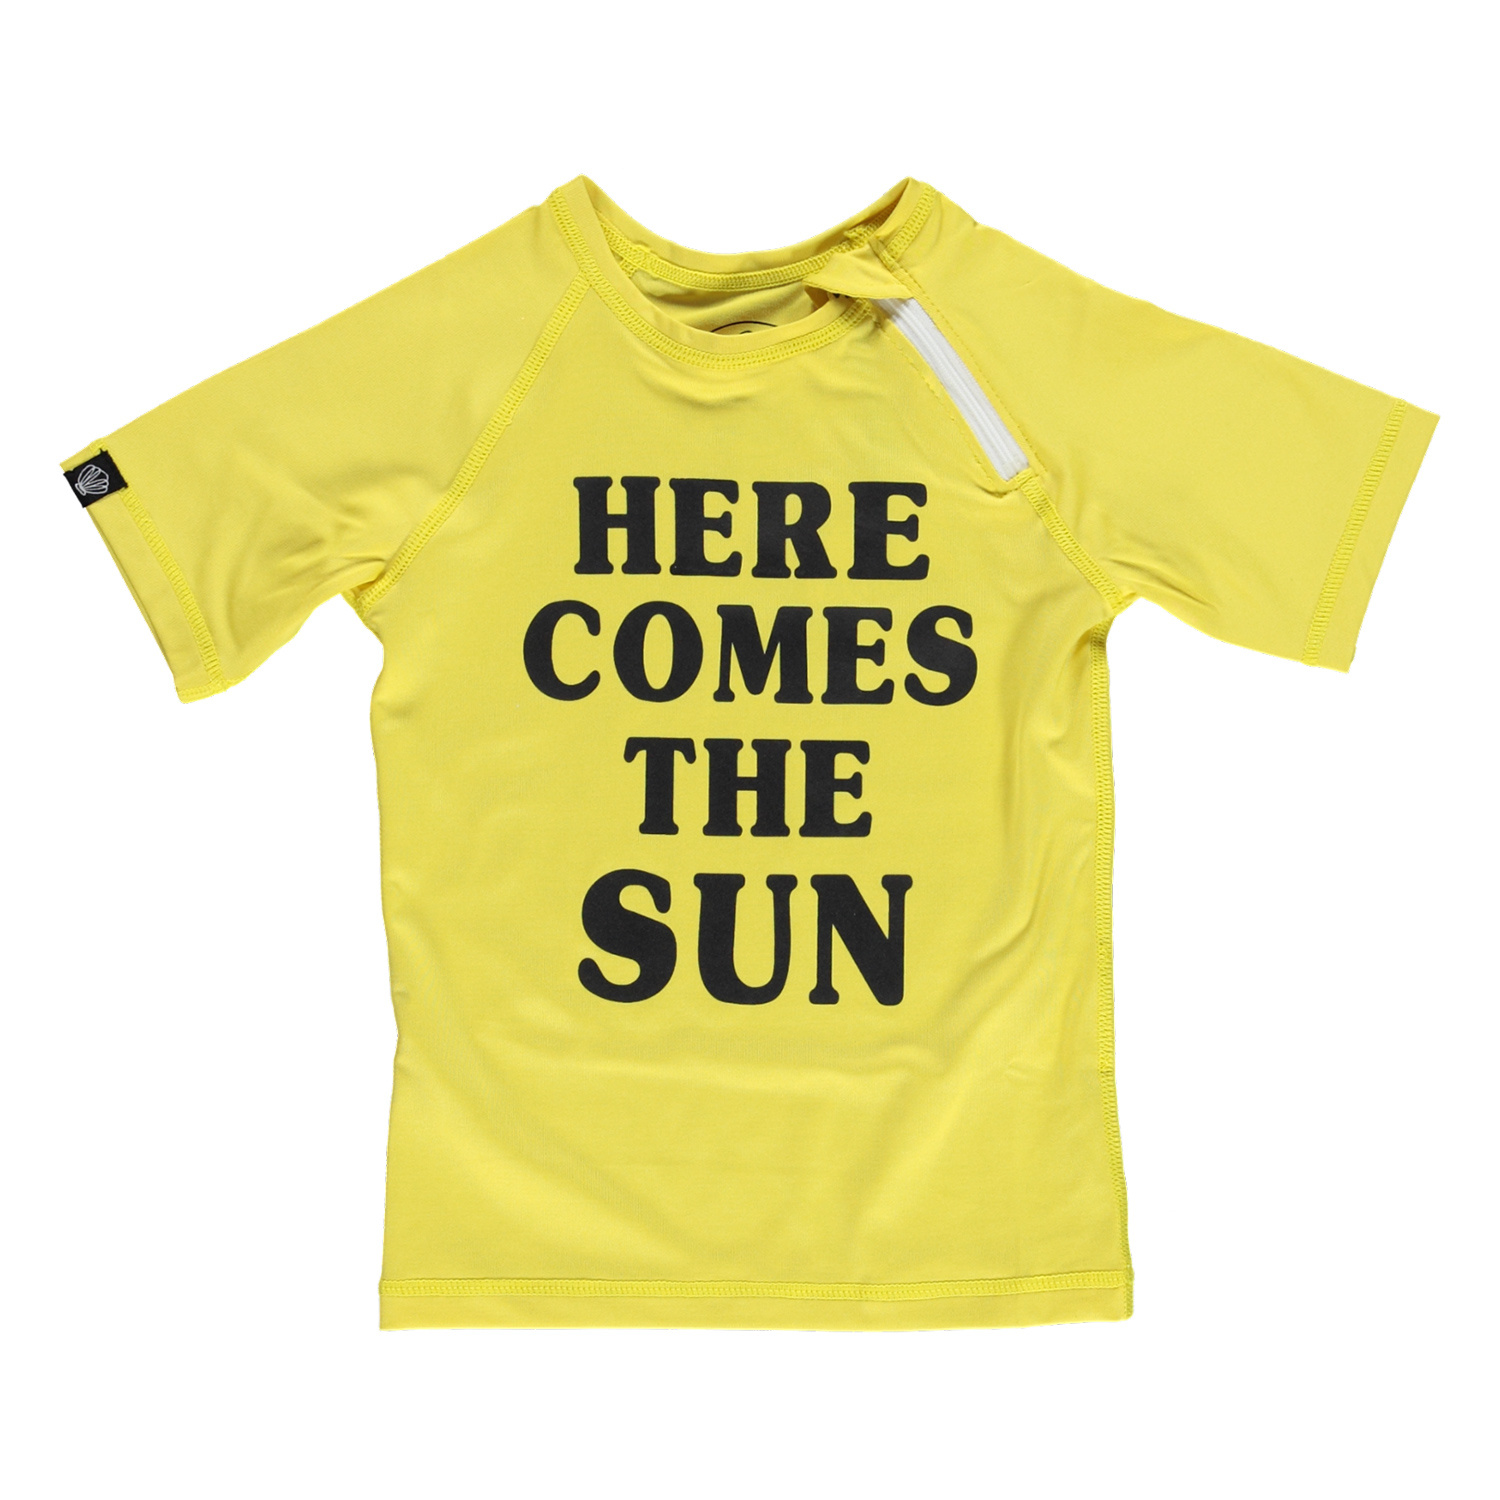 HERE COMES THE SUN-1